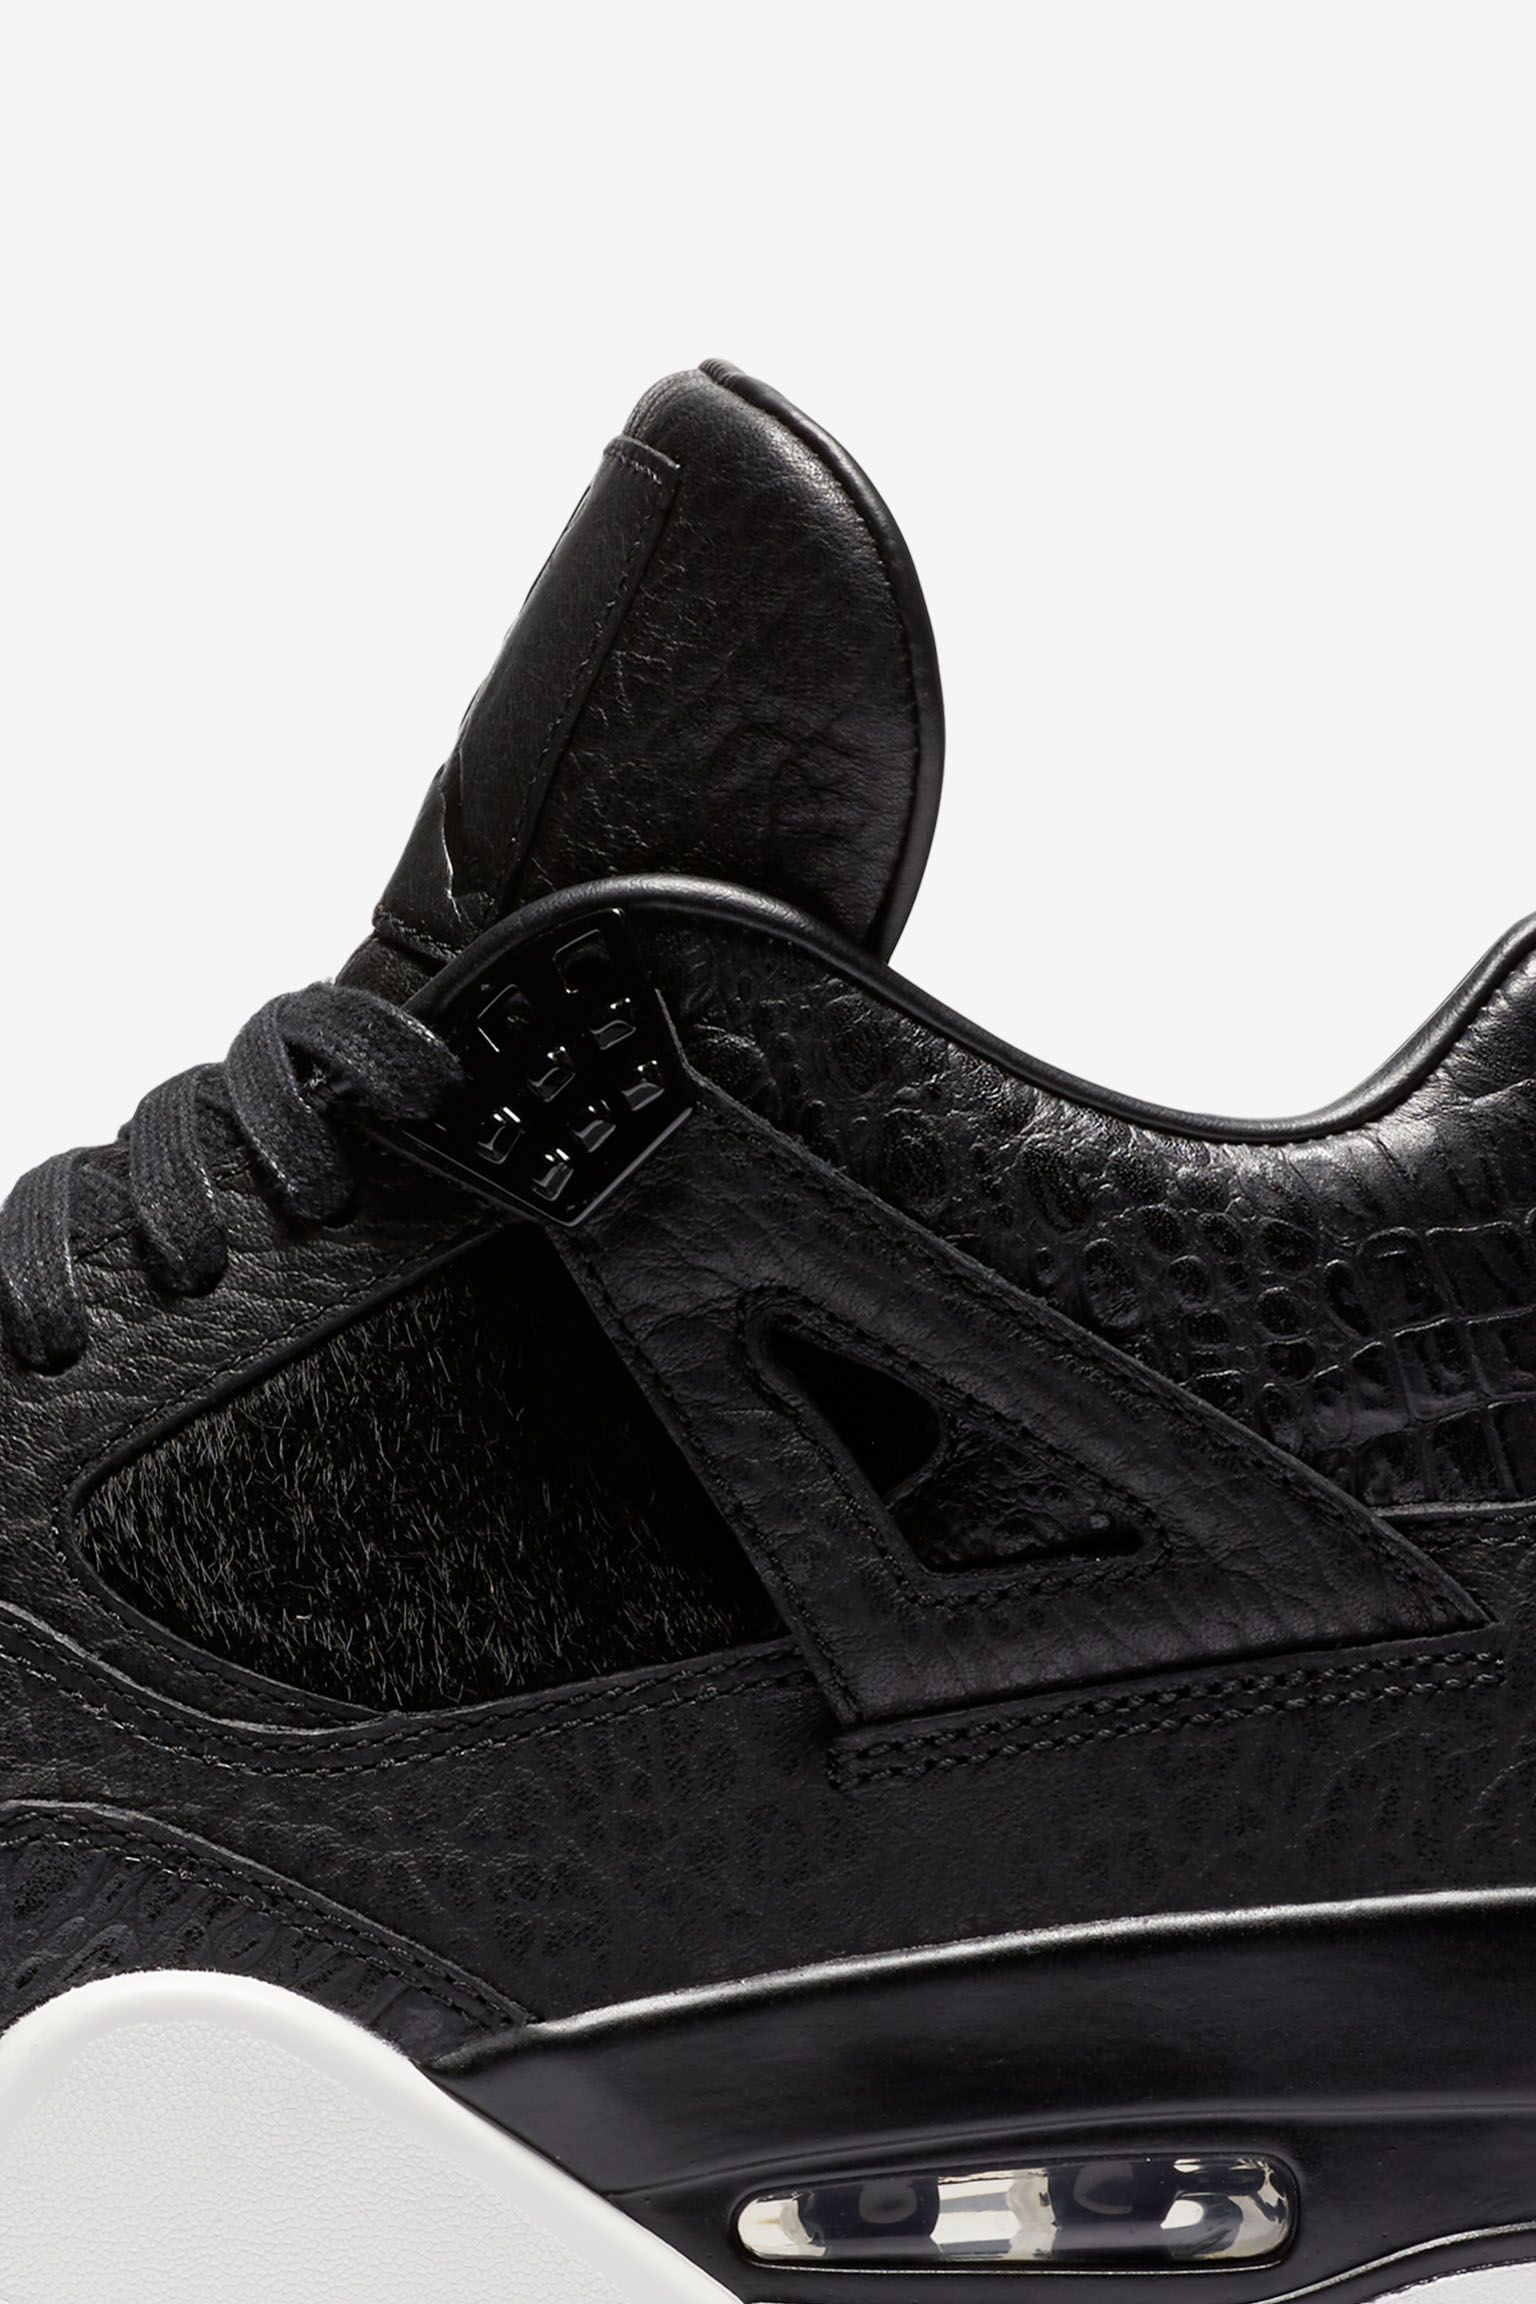 Air Jordan 4 Retro 'Pinnacle' Release Date